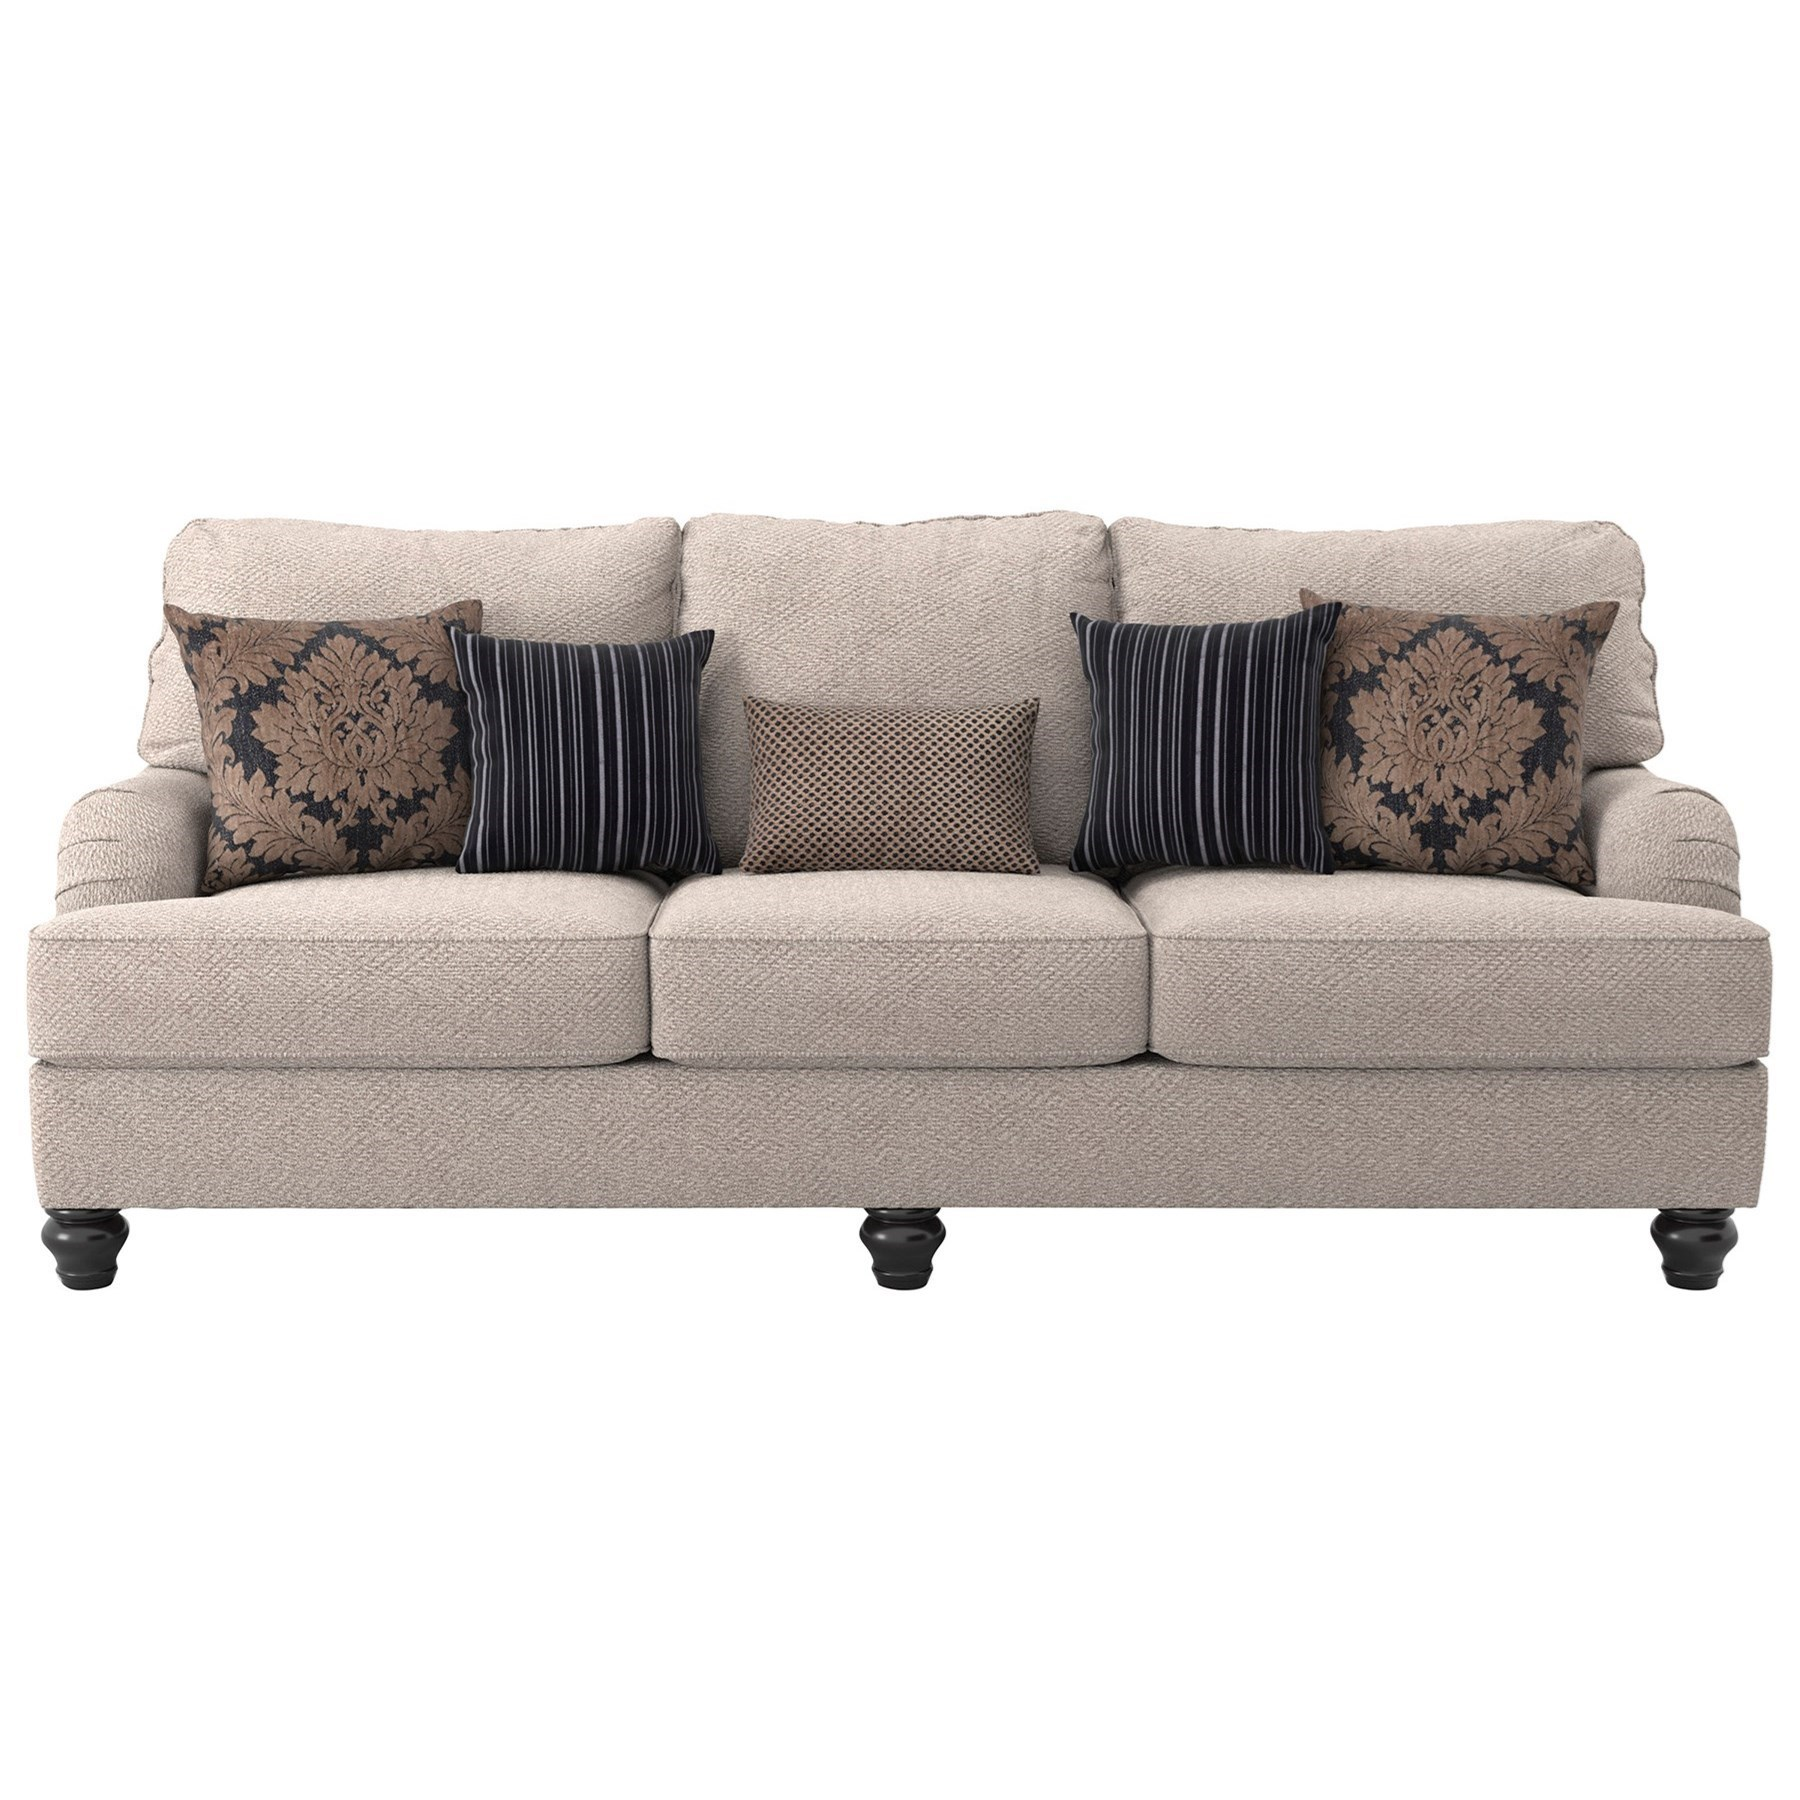 Cheap Couches Sale Under 50